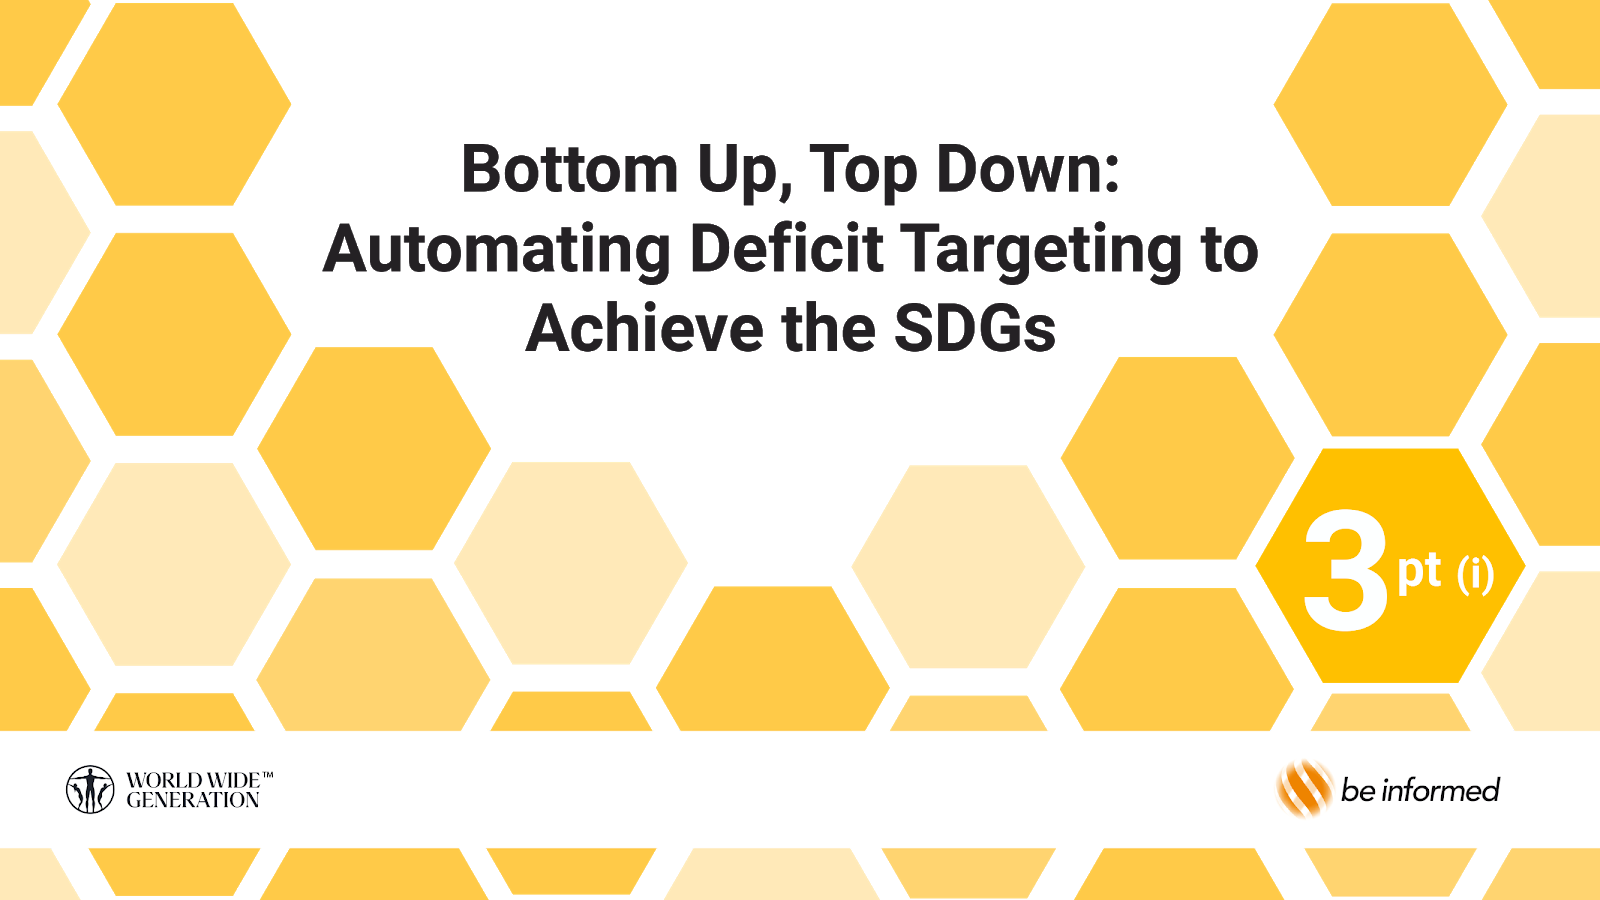 automating deficit targeting to achieve the SDGs